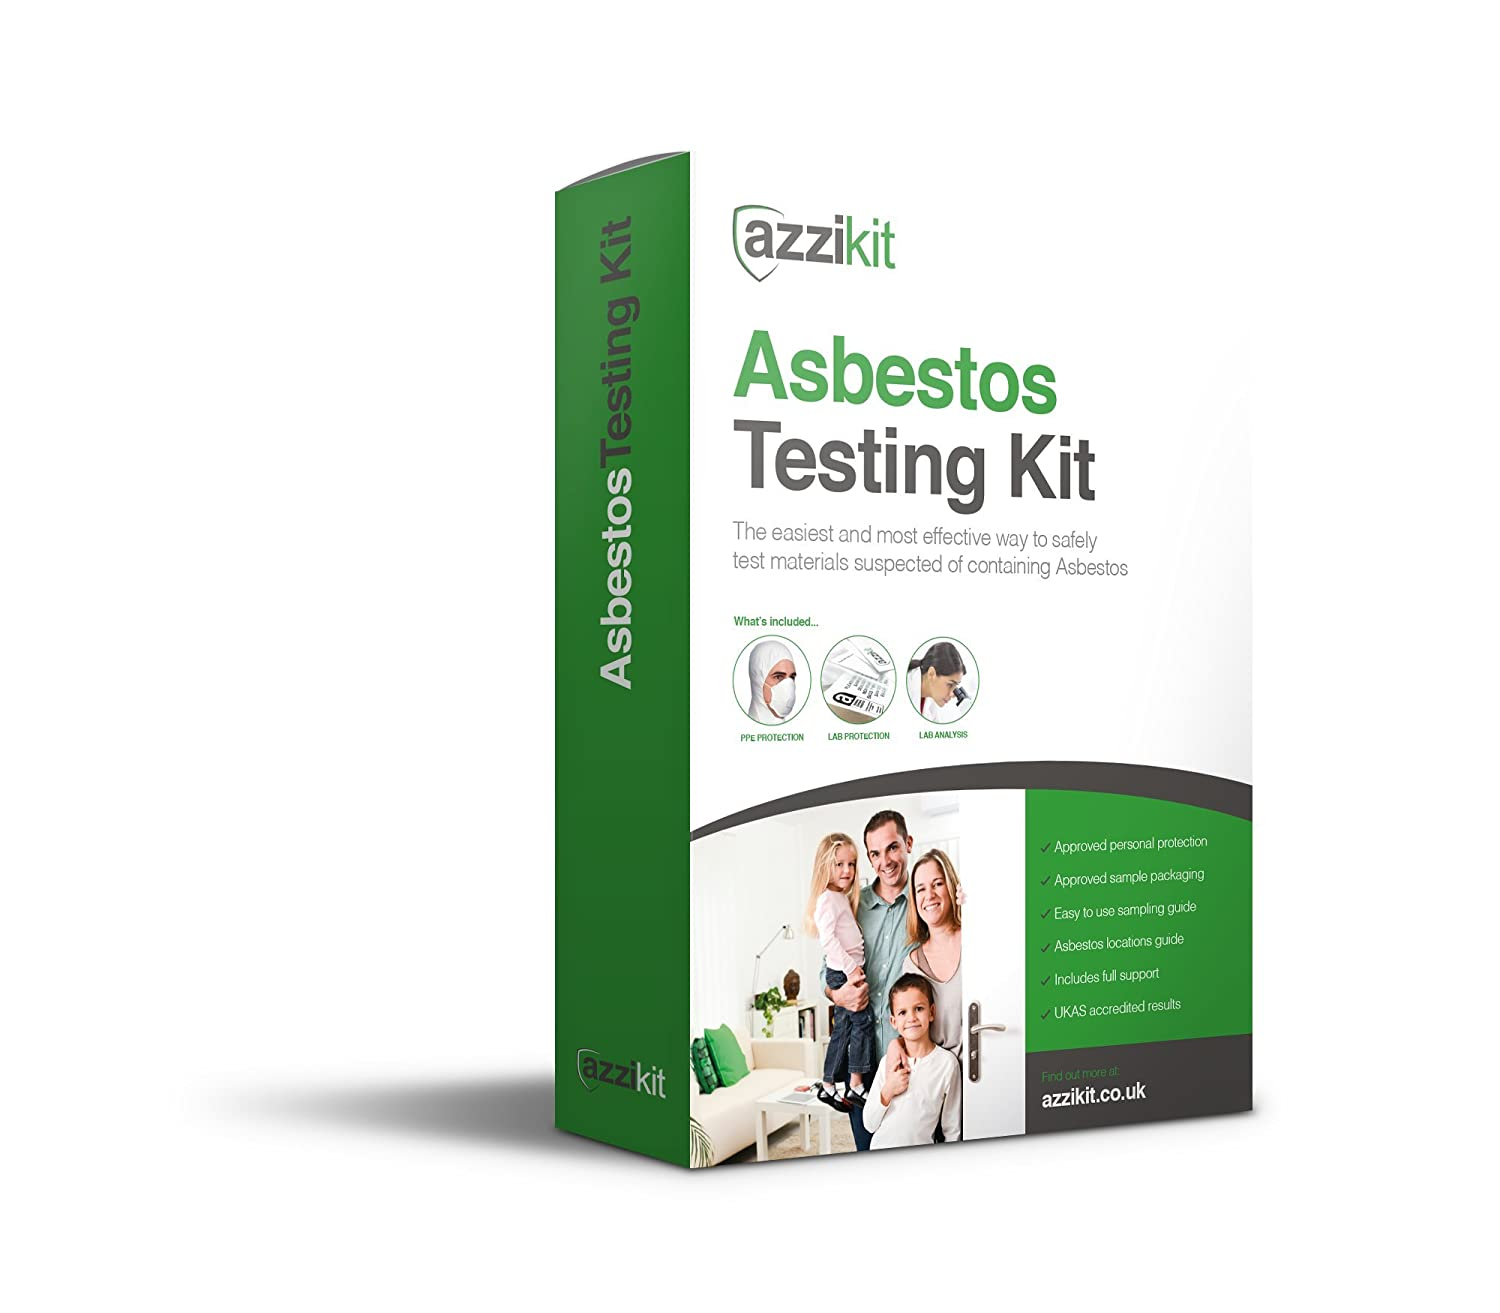 Azzikit - DIY Asbestos Self Sampling / Testing Kit - 2 x Sample Kit -  Complete with fully approved safety equipment and next day UKAS lab results